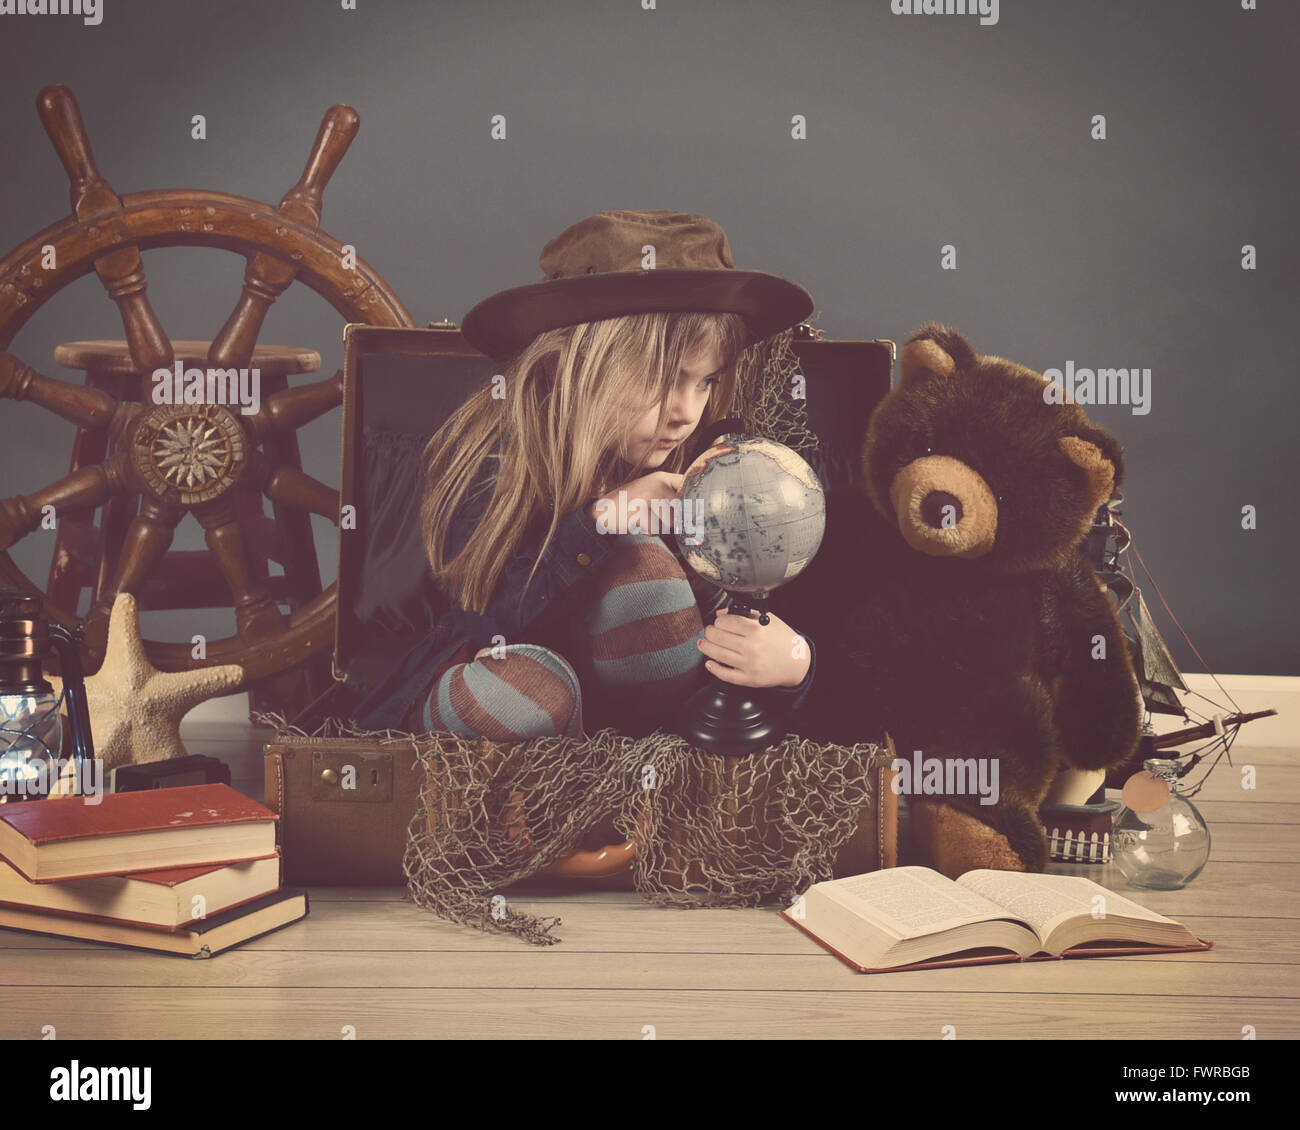 A little child is sitting in a travel suitcase looking at a globe with sea props for an imagination or education - Stock Image